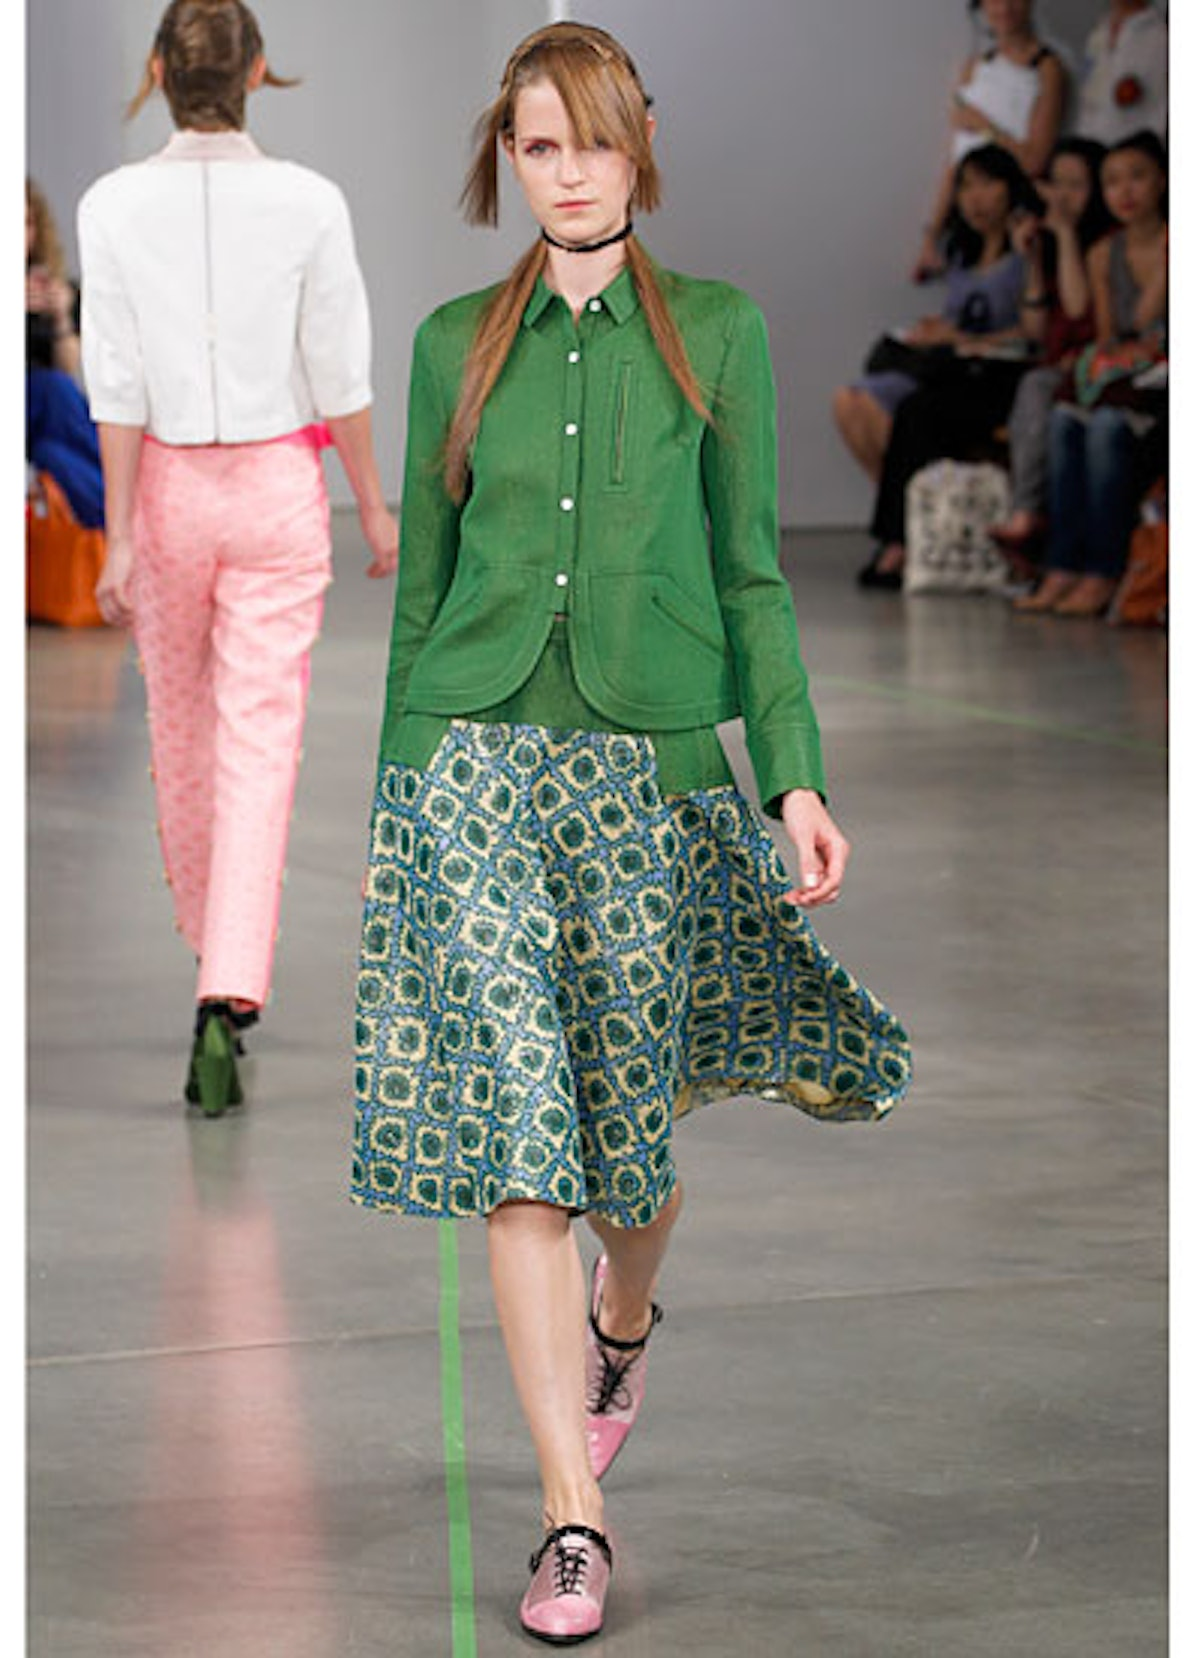 fass-creatures-of-the-wind-spring-2013-runway-16-v.jpg